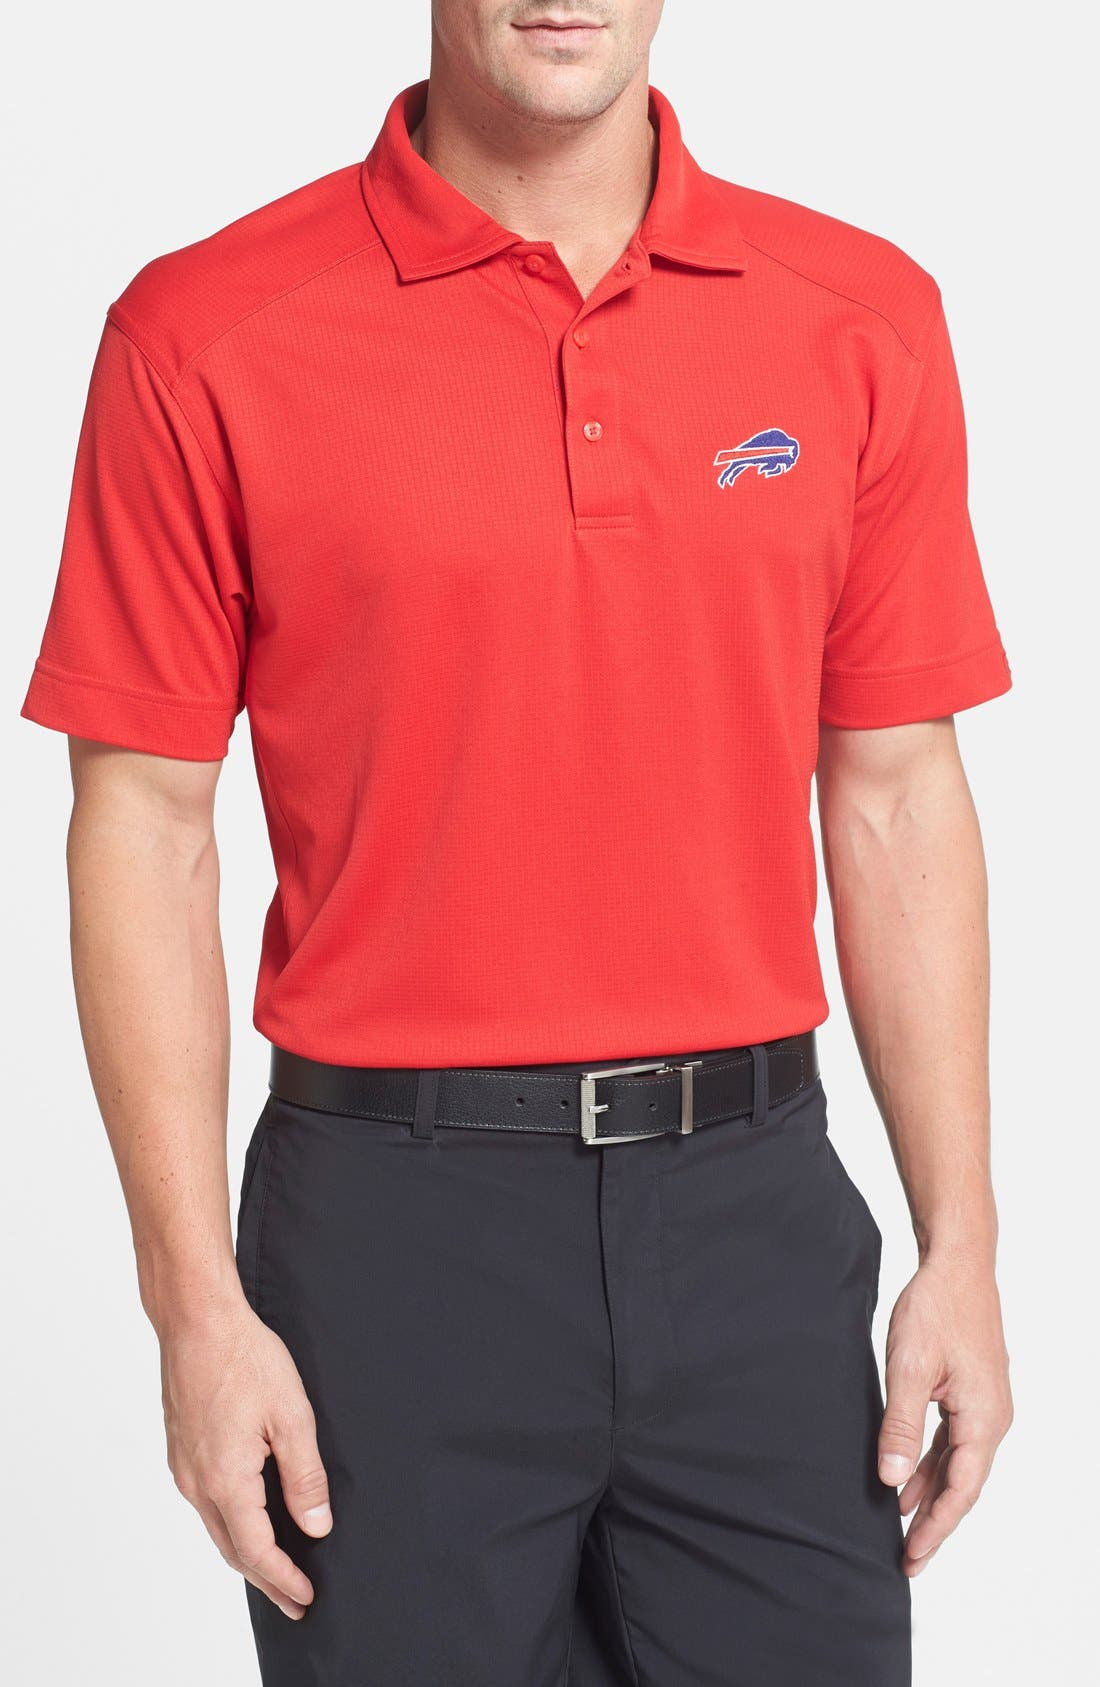 Cutter & Buck 'Buffalo Bills - Genre' DryTec Moisture Wicking Polo (Big & Tall)